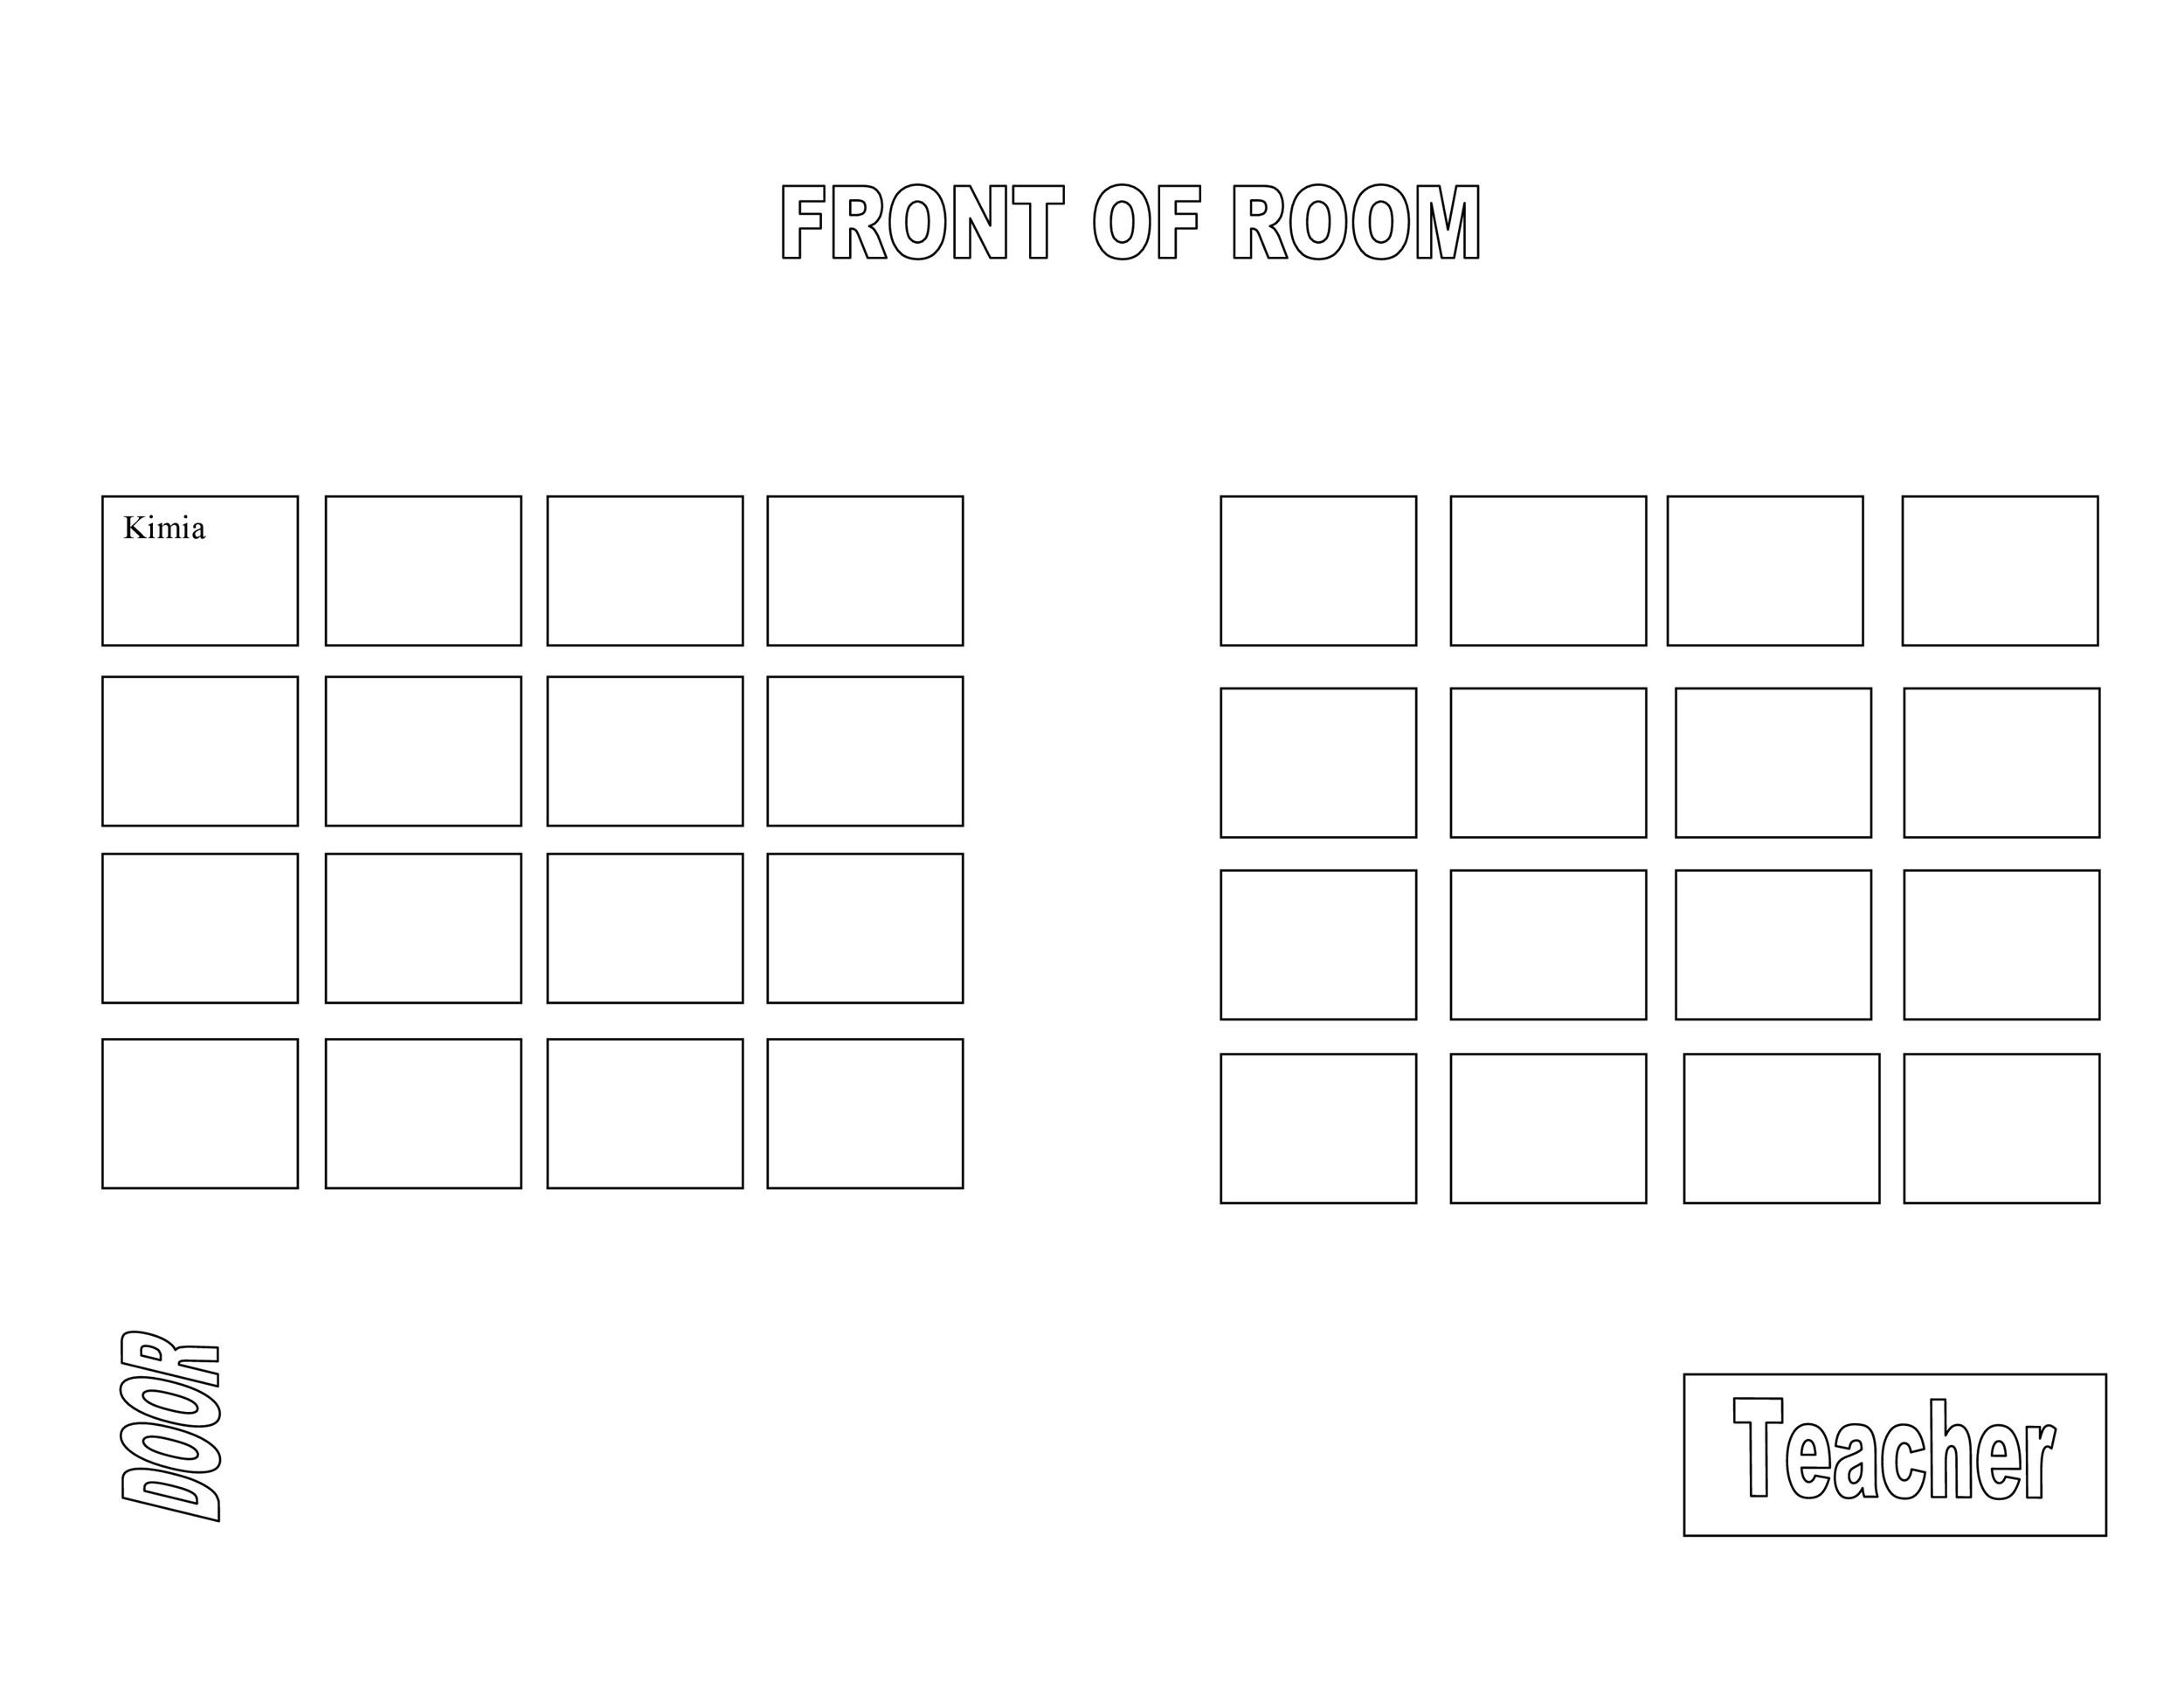 40+ Great Seating Chart Templates (Wedding, Classroom + more) - Classroom Seating Chart Templates